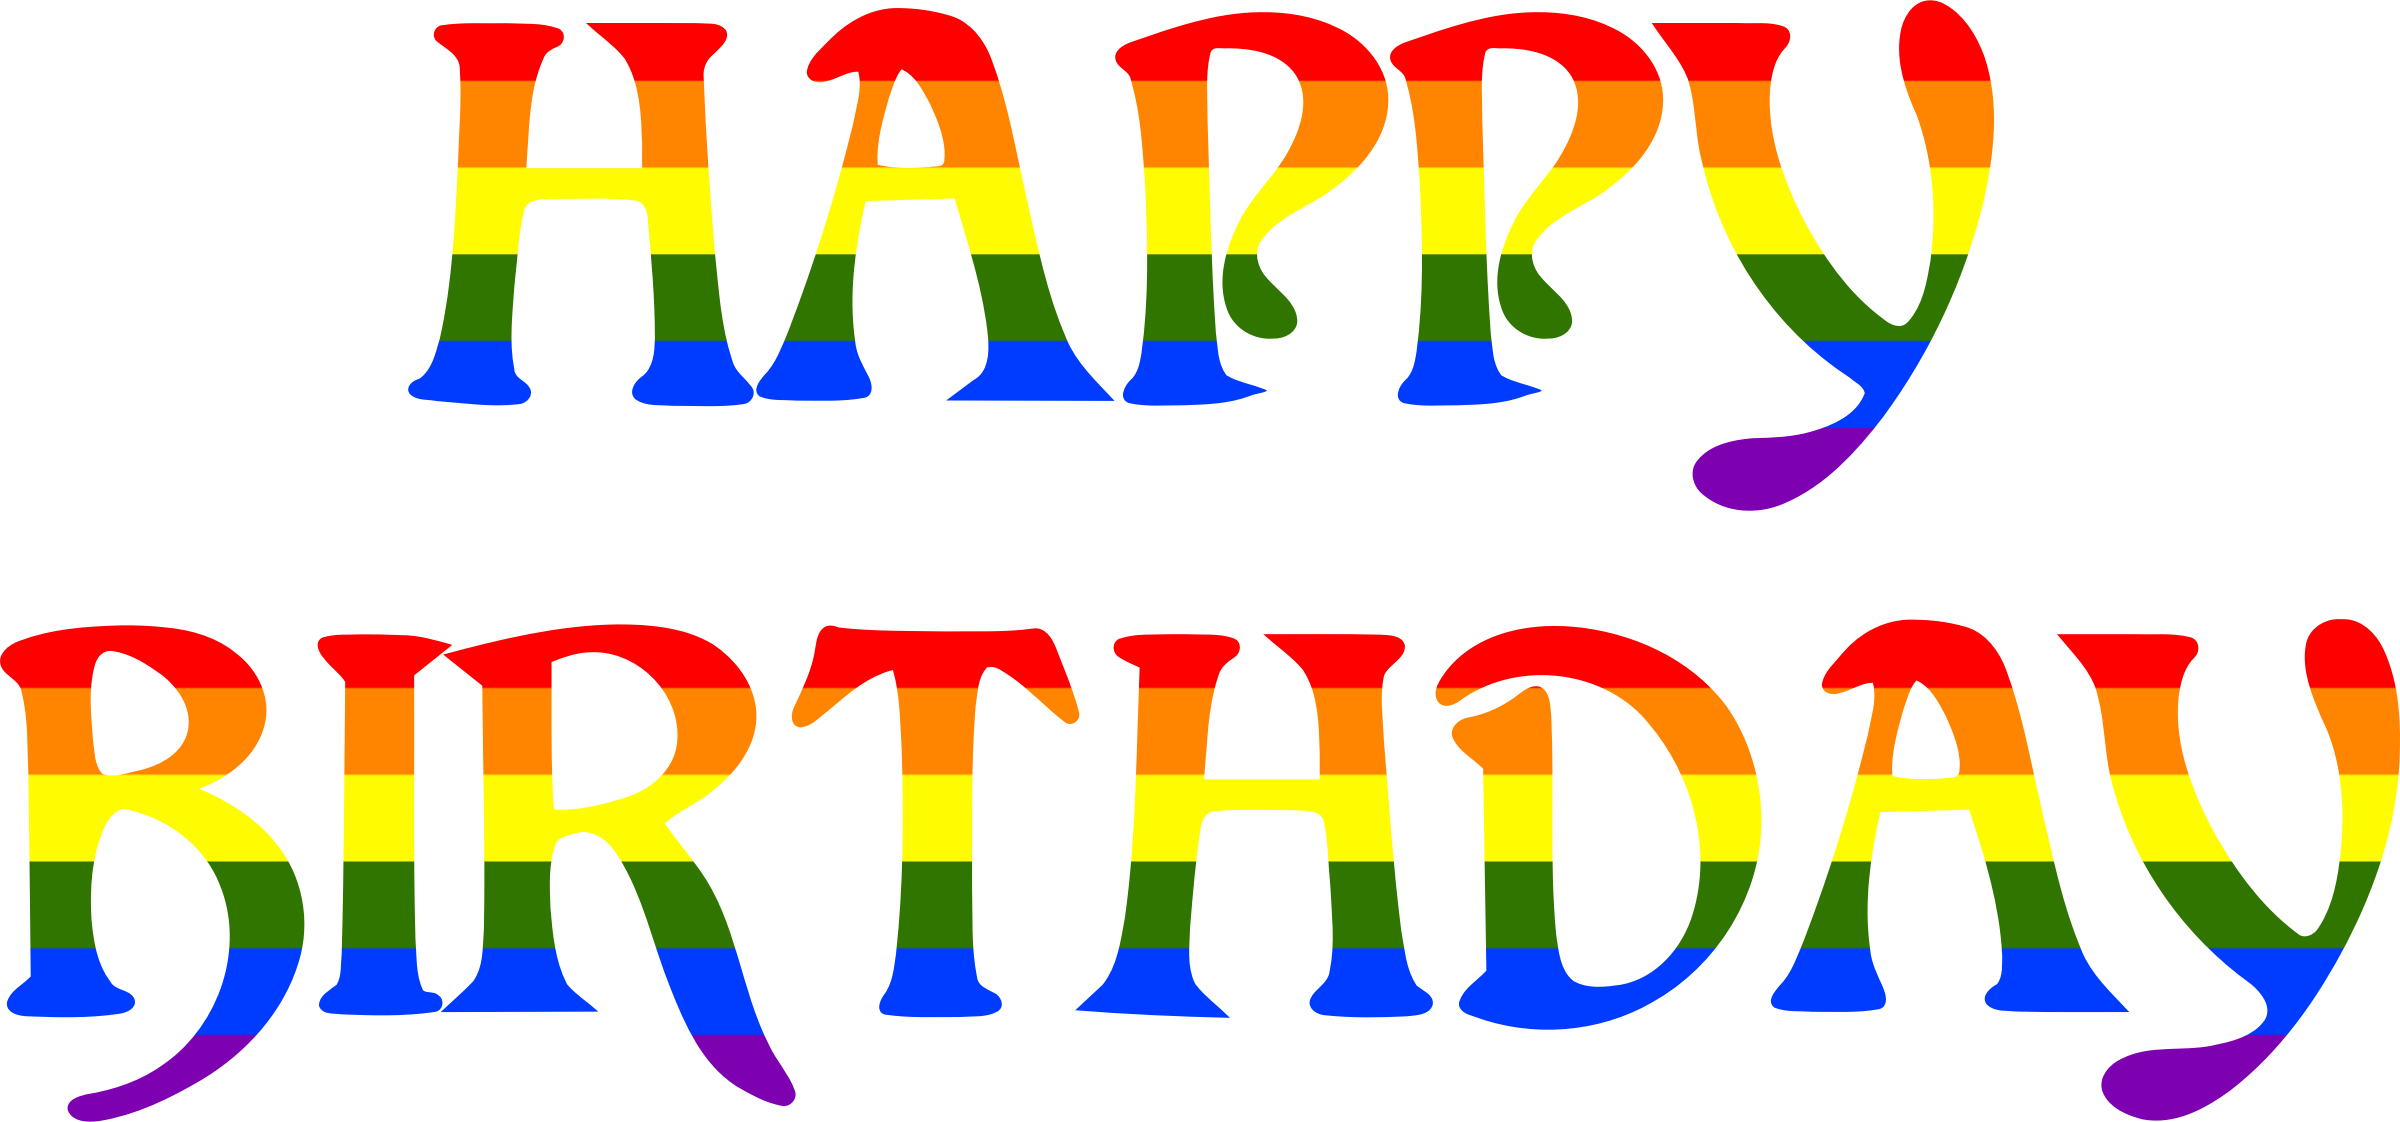 Happy birthday rainbow typography 2 by Firkin